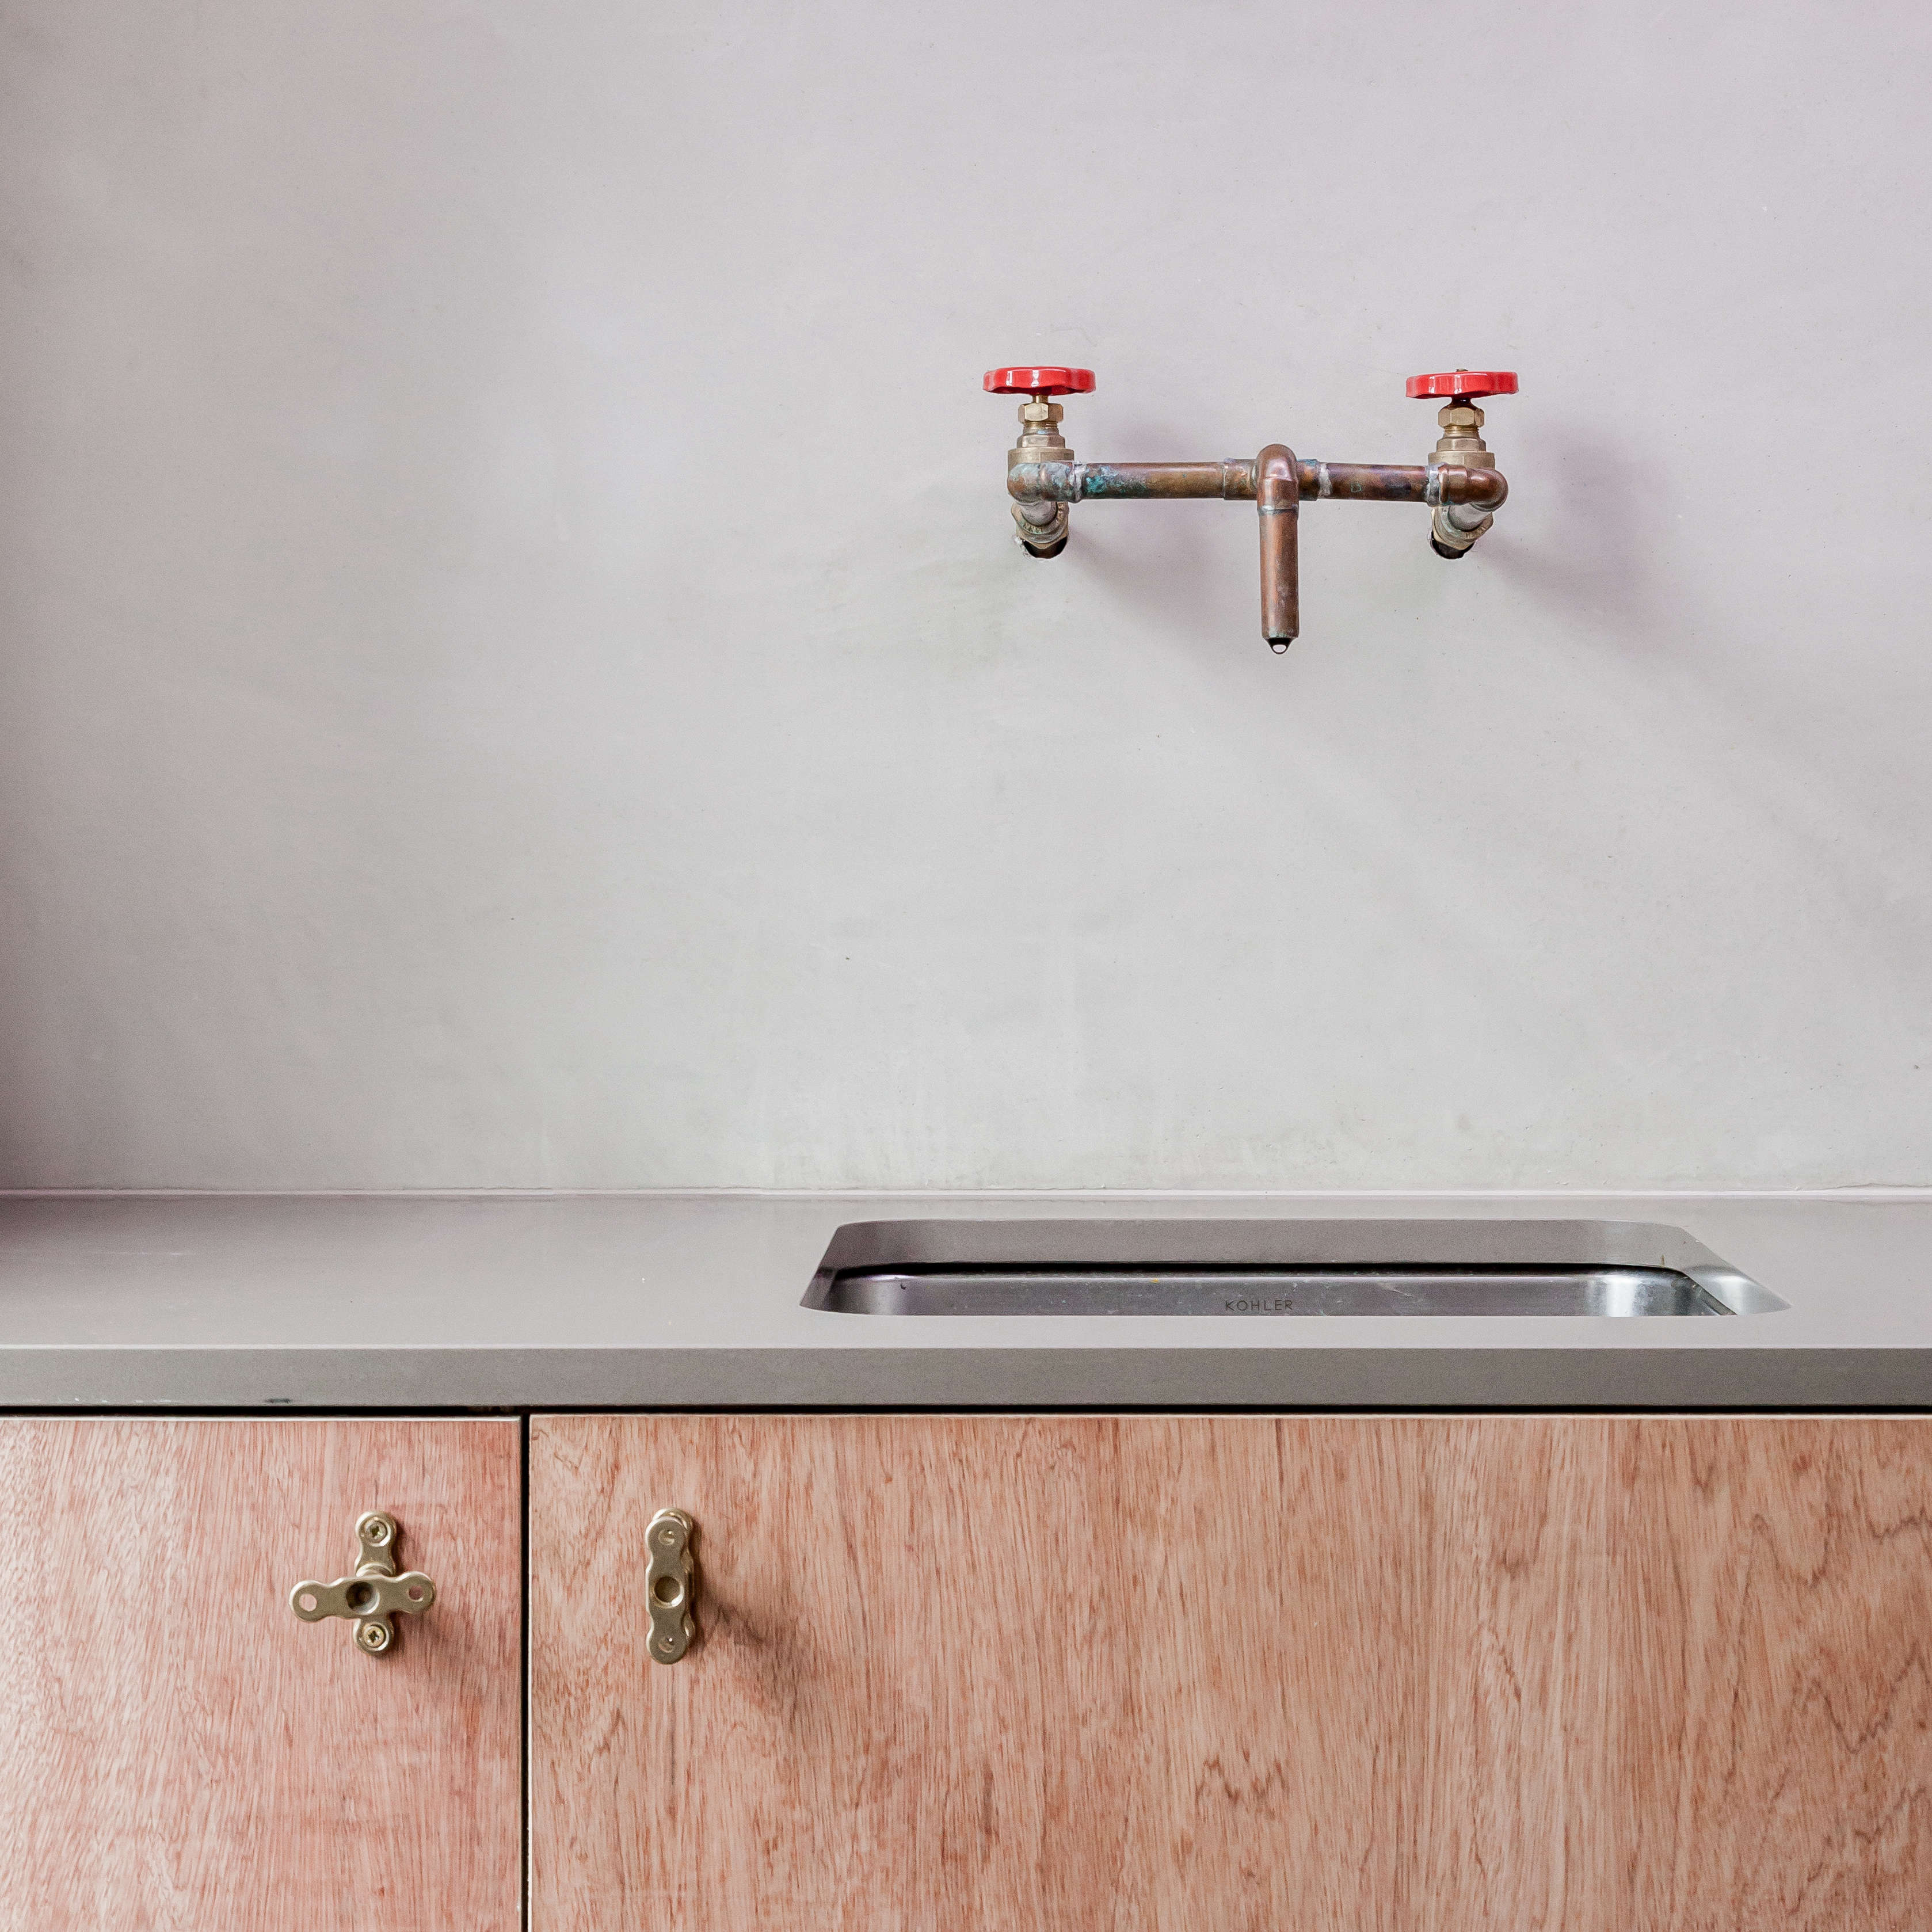 brass kitchen faucet made from plumber's parts in a kitchen designed by archite 14